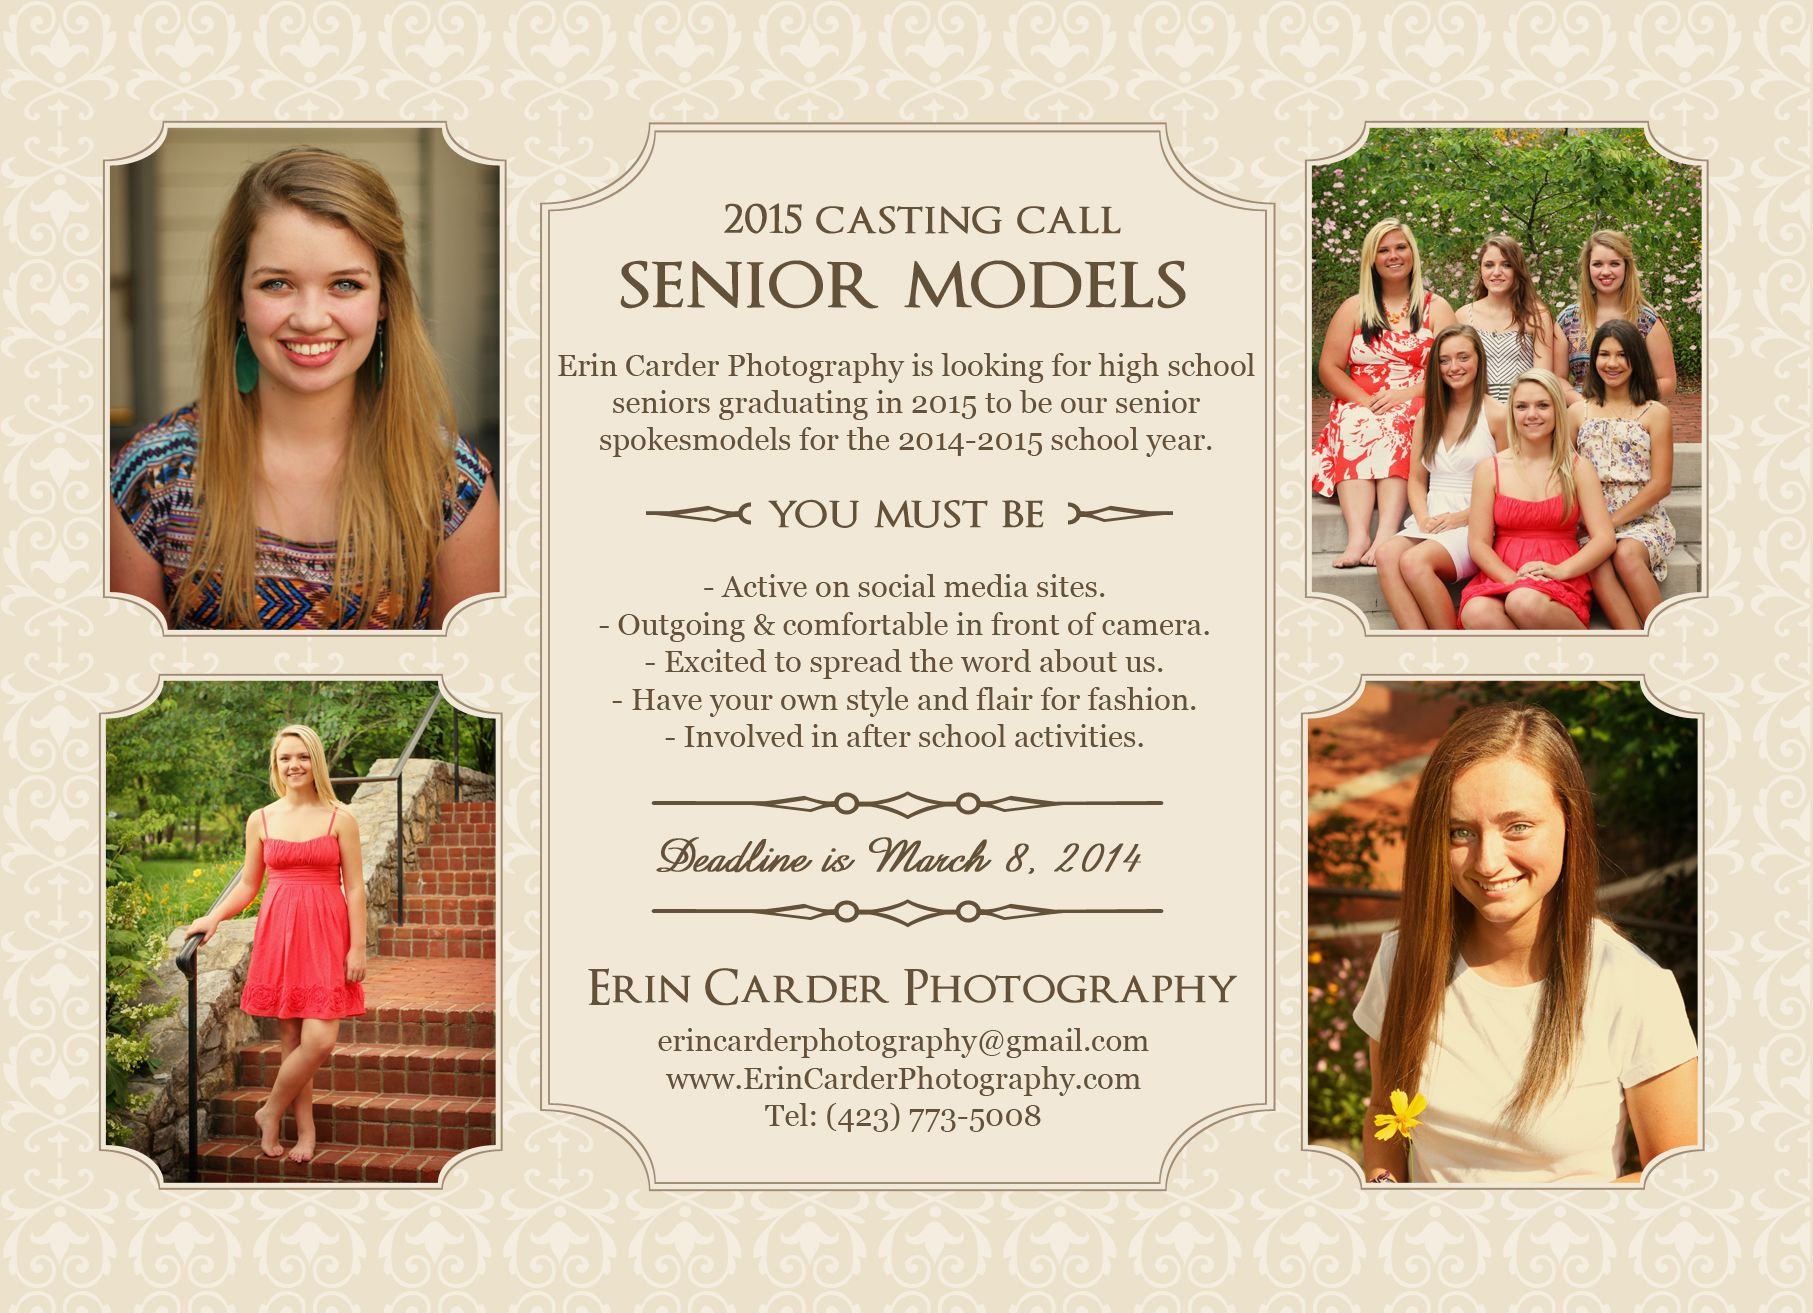 Calling 2015 Seniors: Erin Carder Photography is in need of high school seniors graduating in 2015 to represent our studio for the 2014-2015 school year. Find out more information at www.erincarderphotography.com